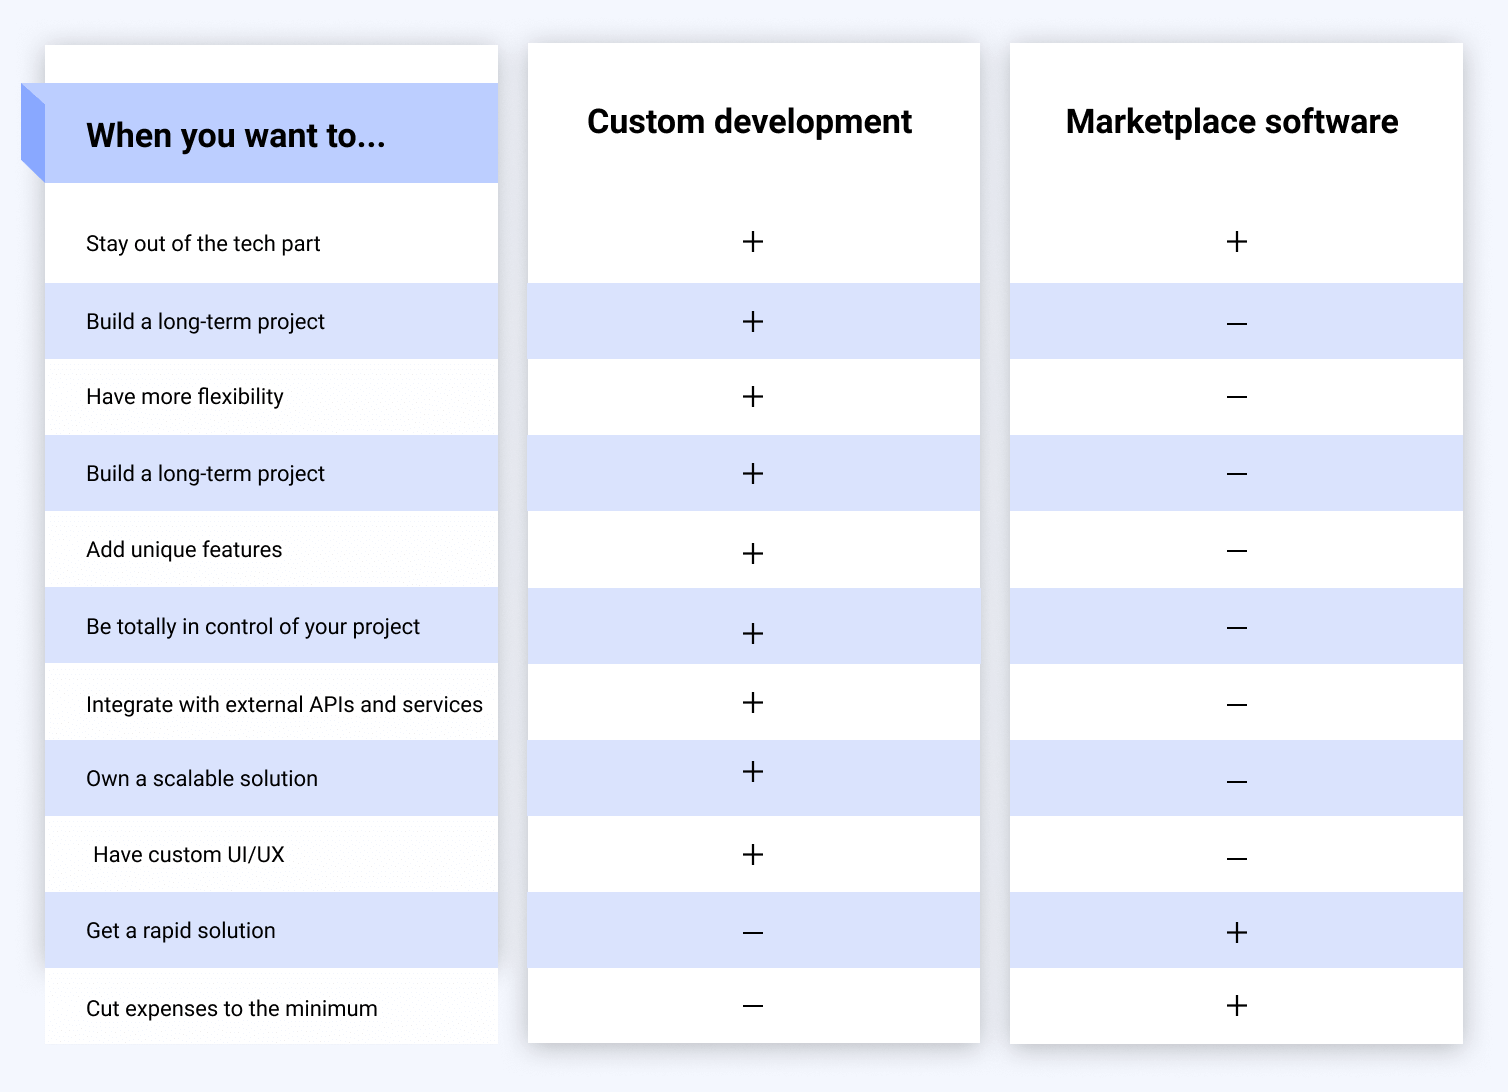 marketplace software vs custom development